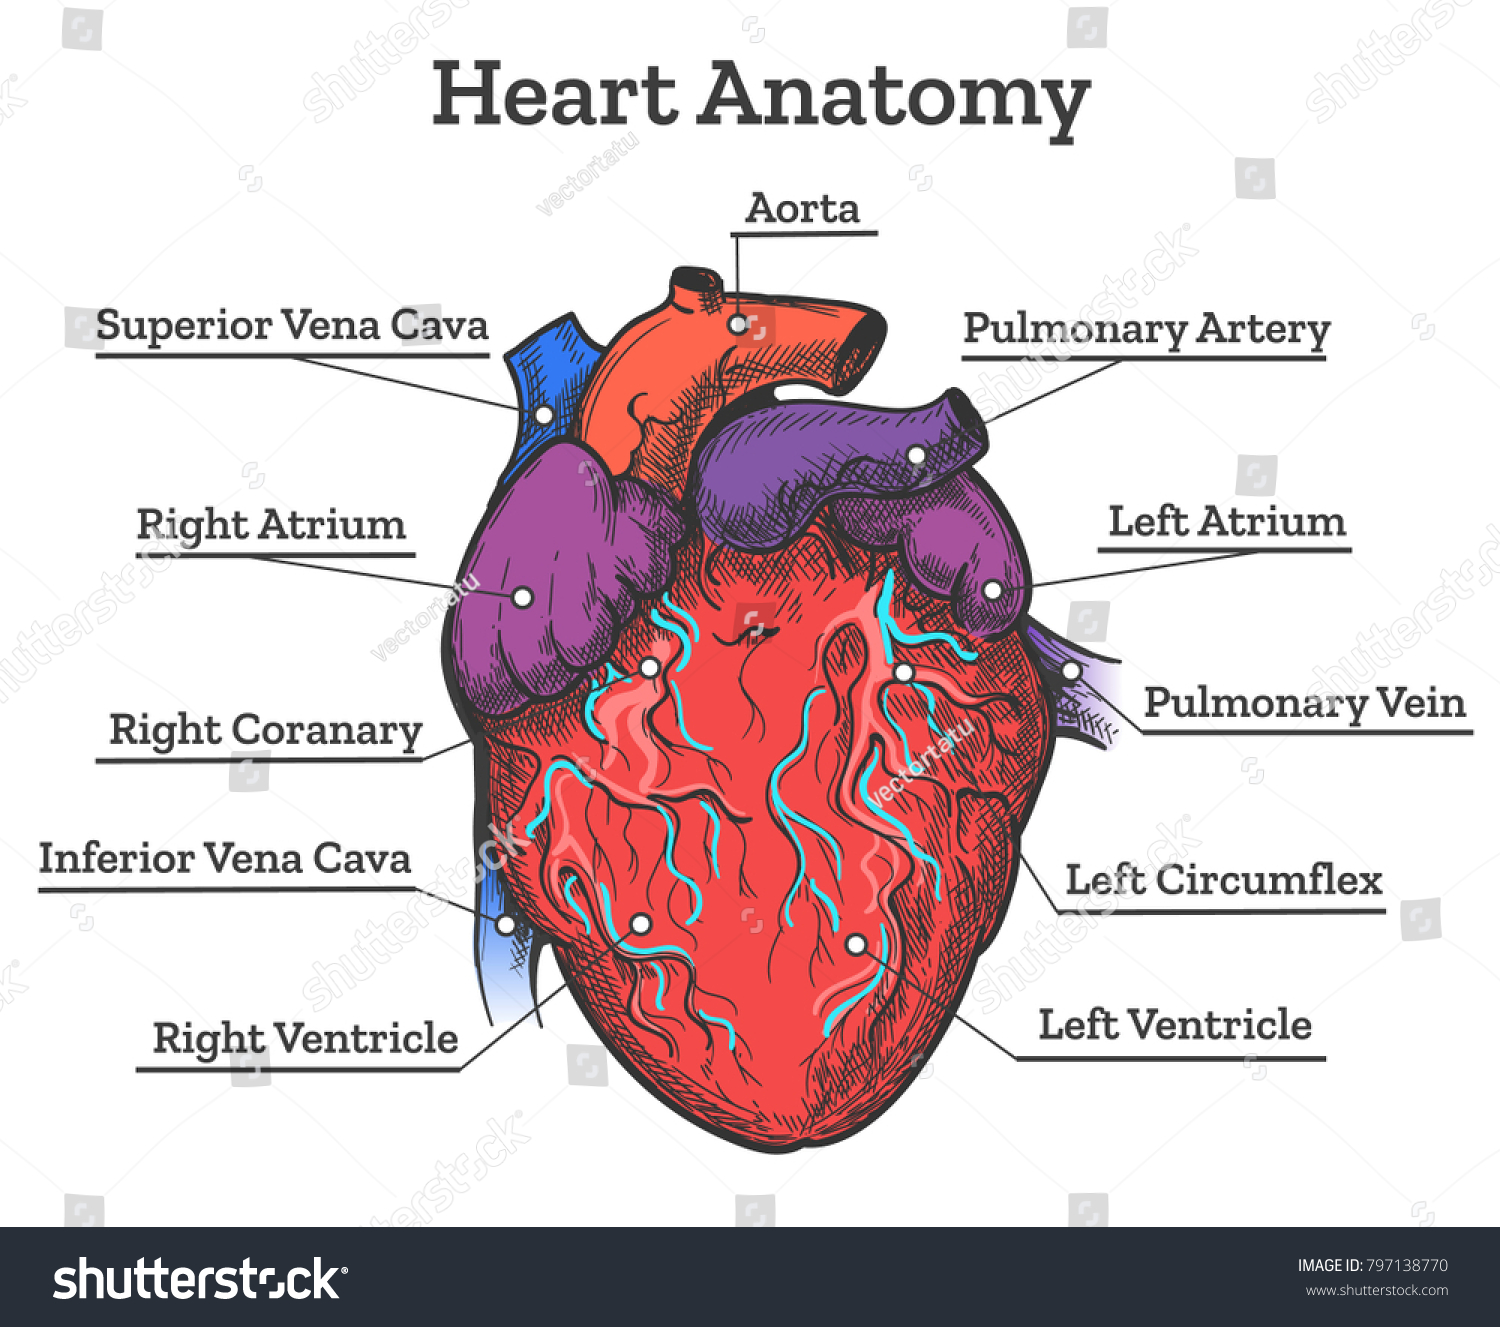 hight resolution of heart anatomy colored sketch anatomic human cardiac muscle diagram vector illustration